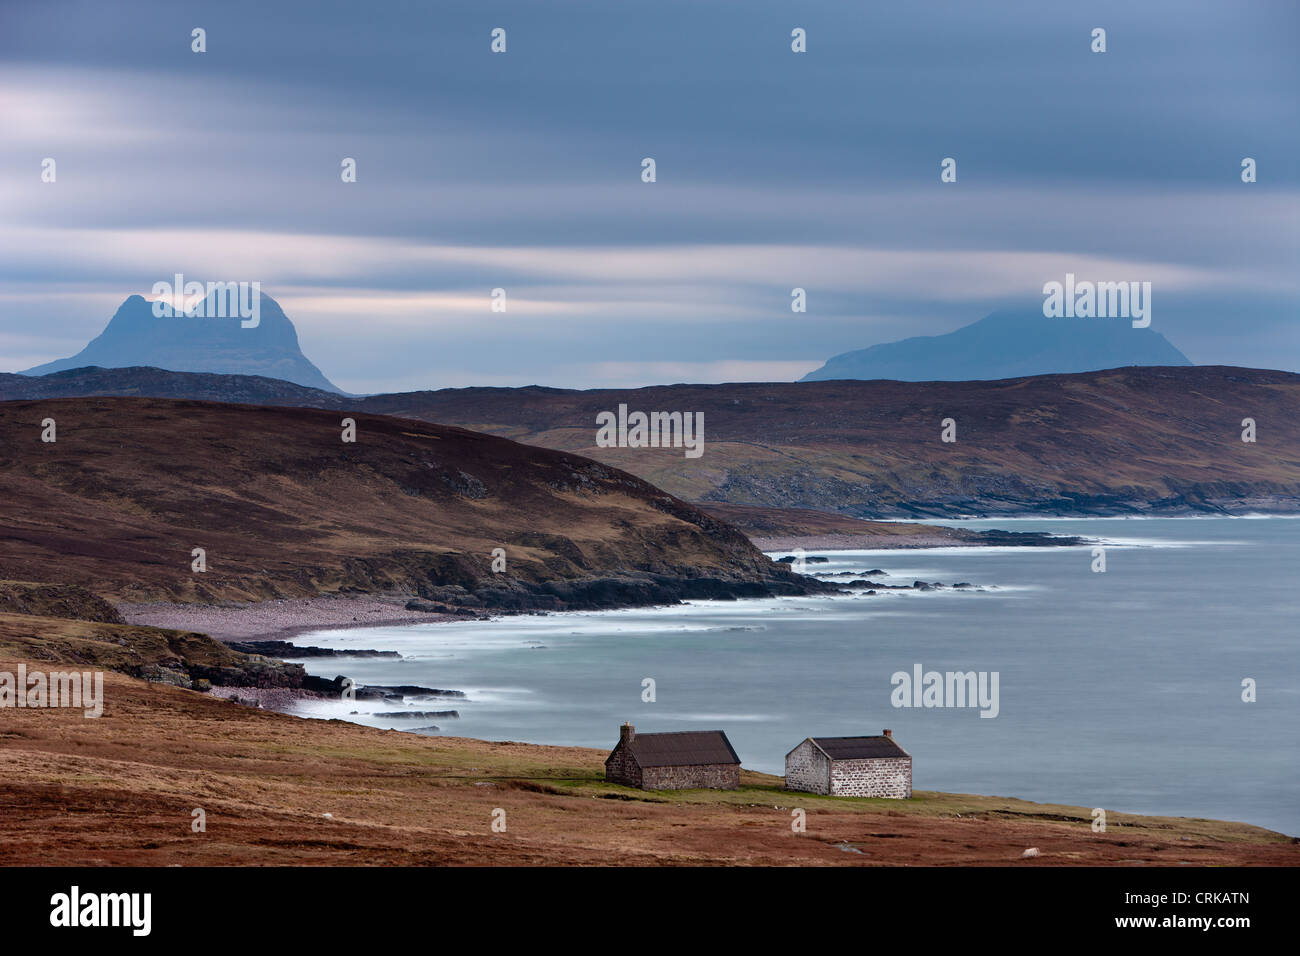 two cottages on the shore at Stoer, with the peaks of Suilven & Cul More beyond, Assynt, Sutherland, Scotland - Stock Image